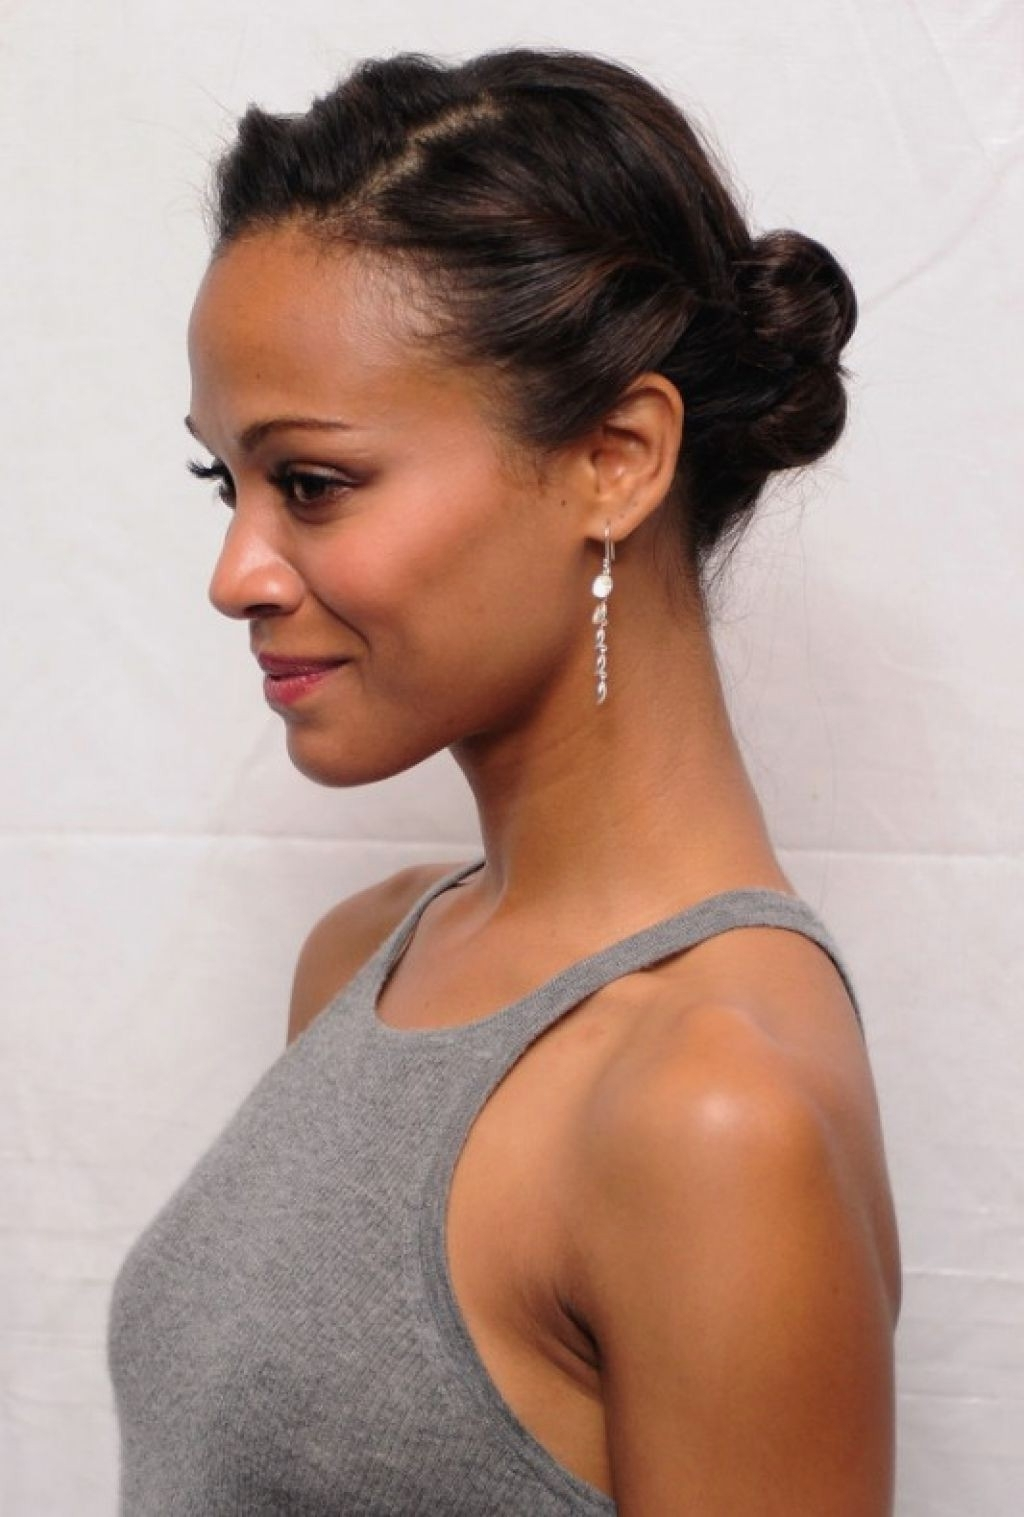 Black Hairstyles : New Black Tie Updo Hairstyles Idea With Complete Pertaining To Updo Hairstyles For Black Tie Event (View 11 of 15)